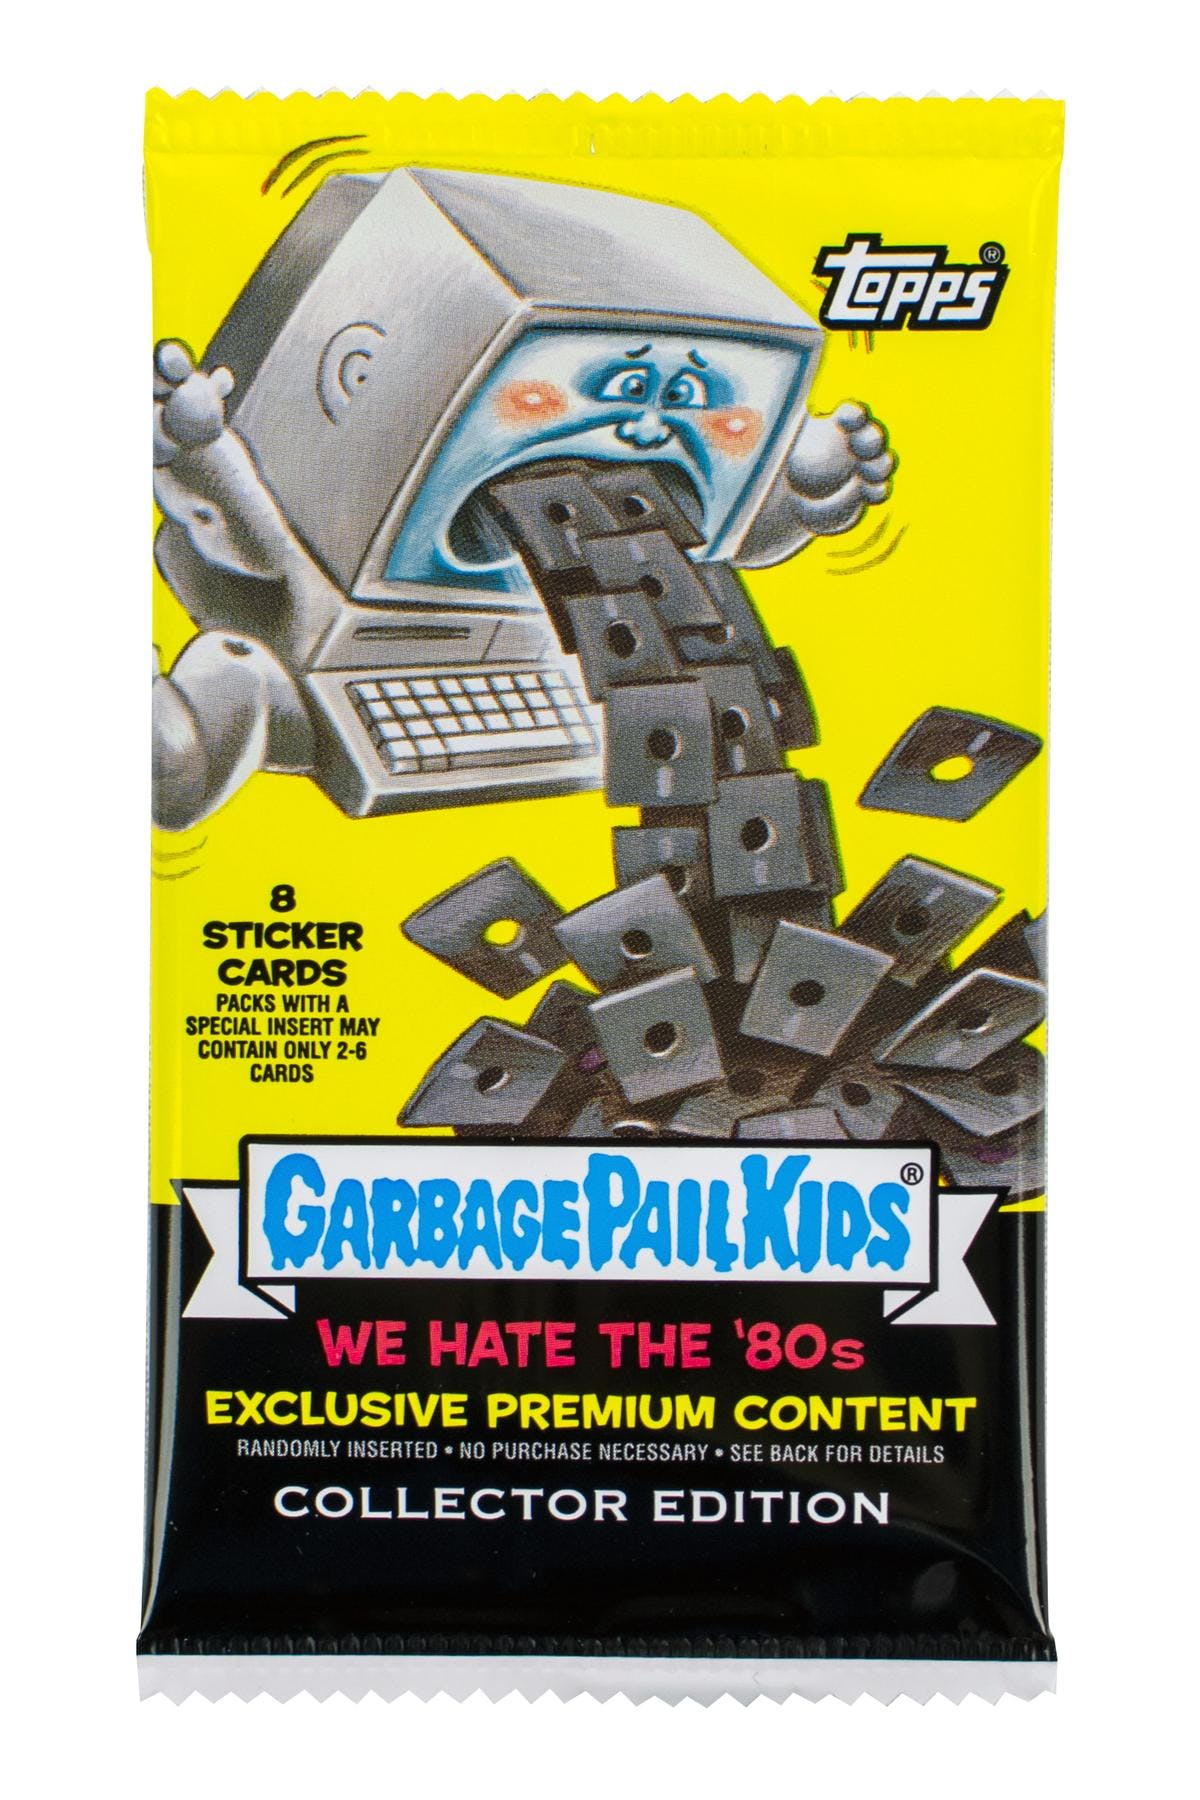 7333e8d1ad9 Garbage Pail Kids Series 1 We Hate The 80 s Collector Edition Pack ...